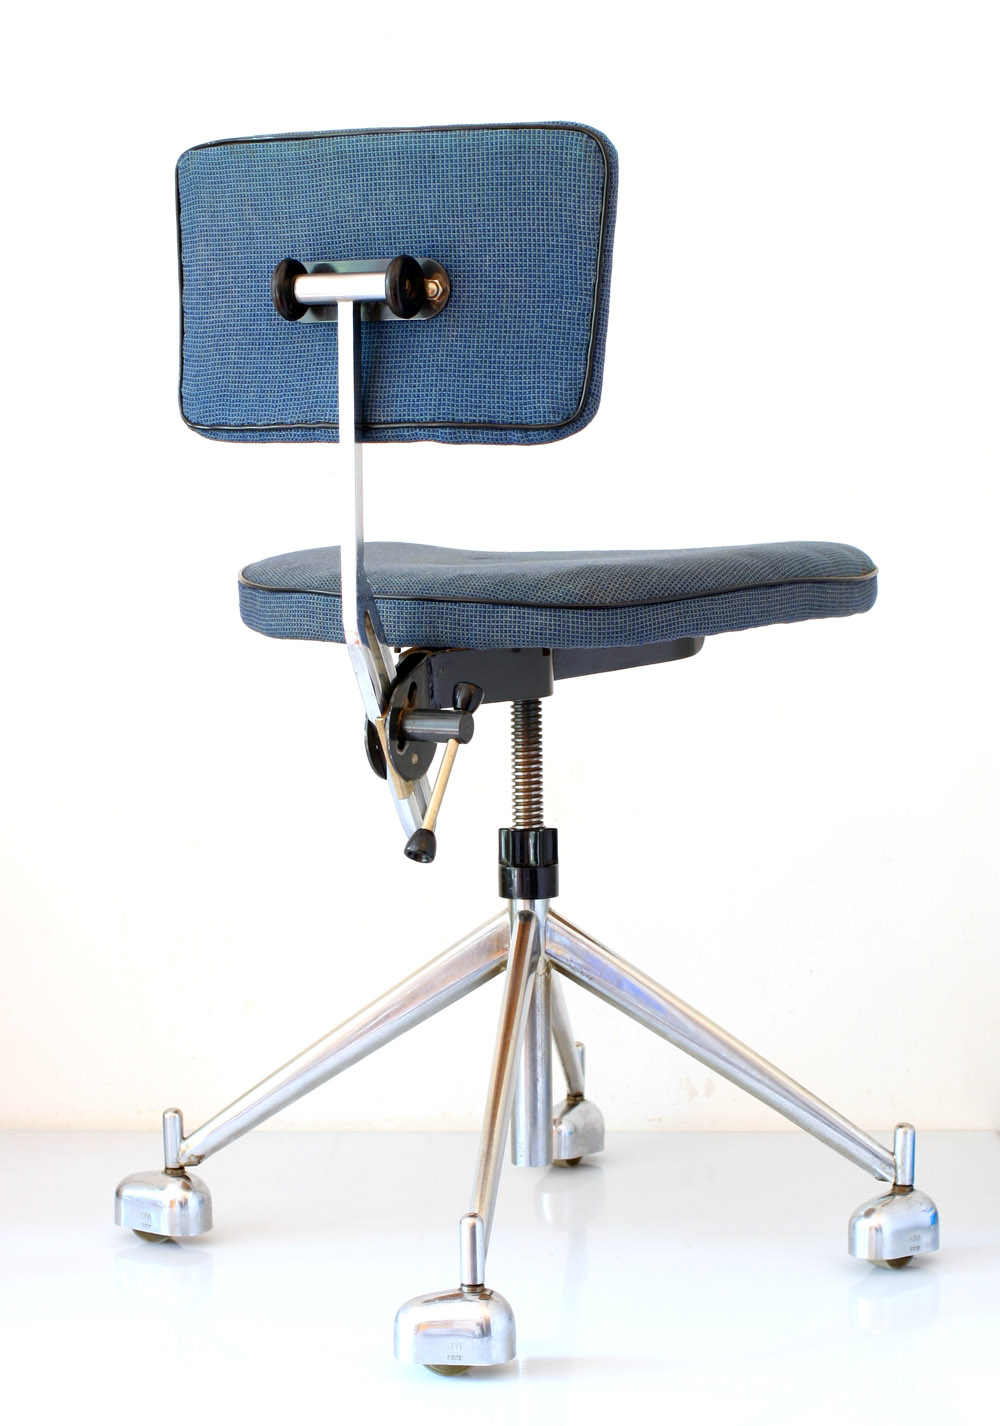 Kevi Chair Kevi Adjustable Retro Office Chair